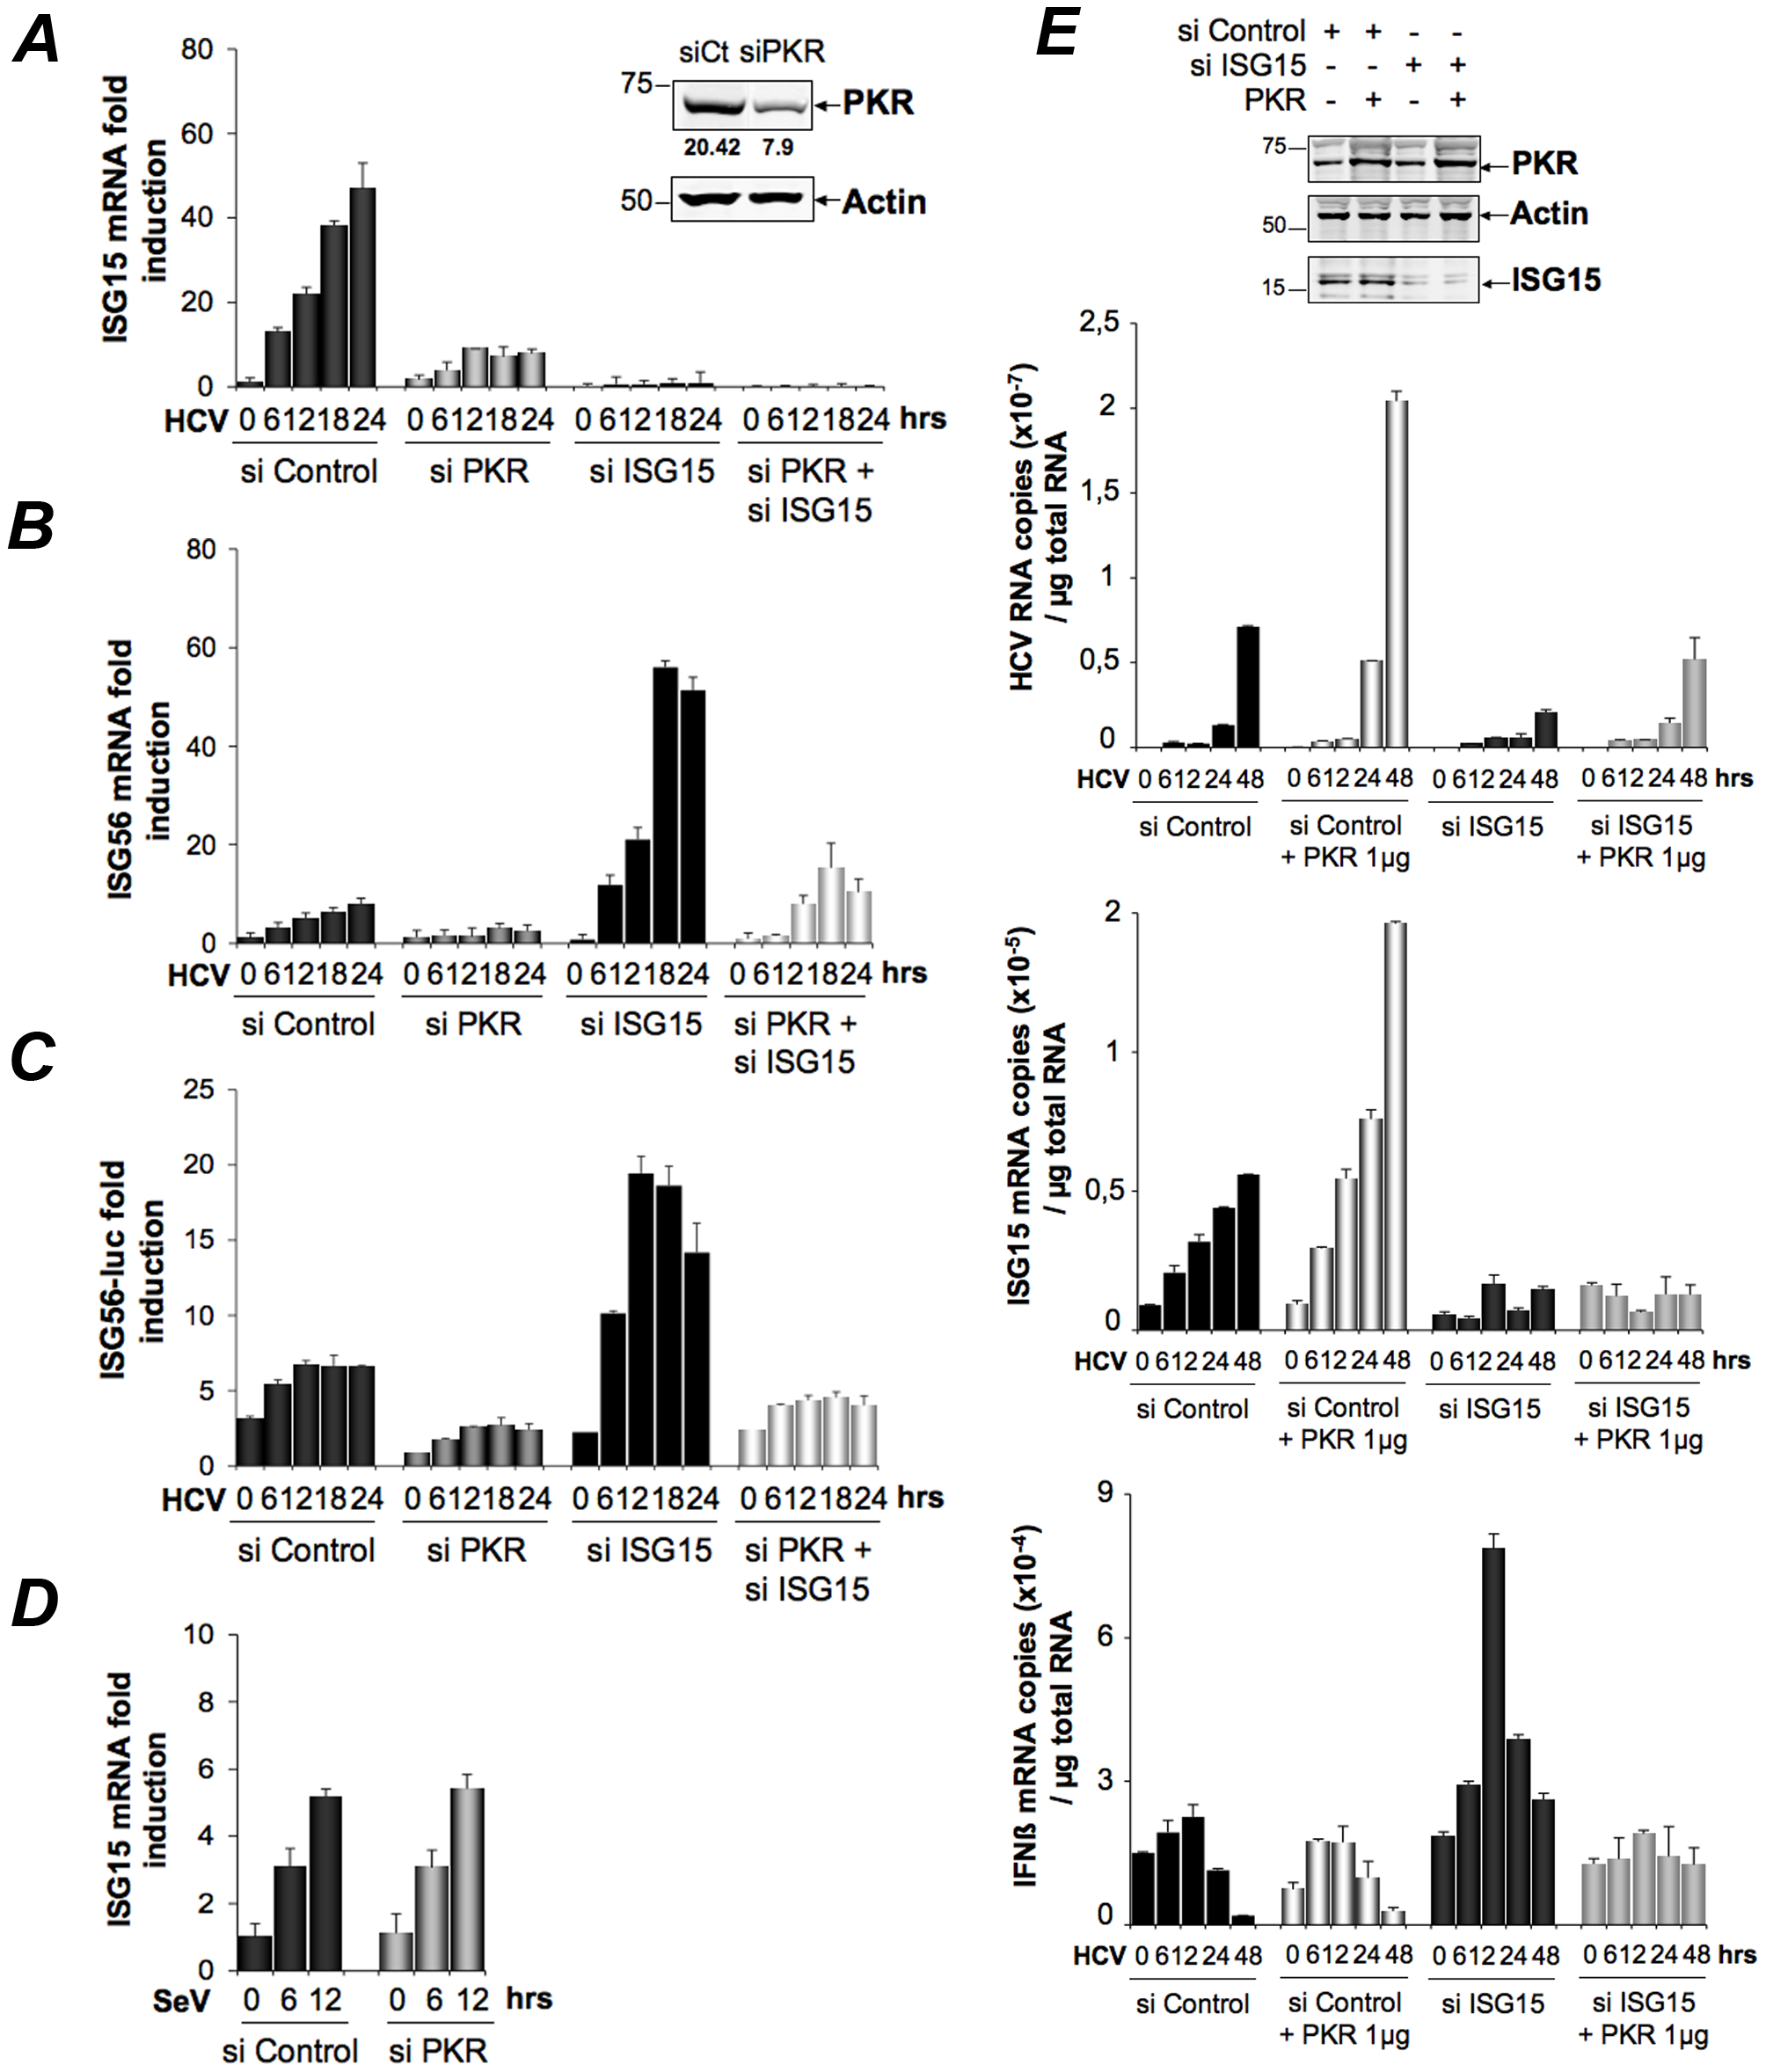 HCV triggers a PKR-dependent pathway early in infection to induce ISG15 and other genes.